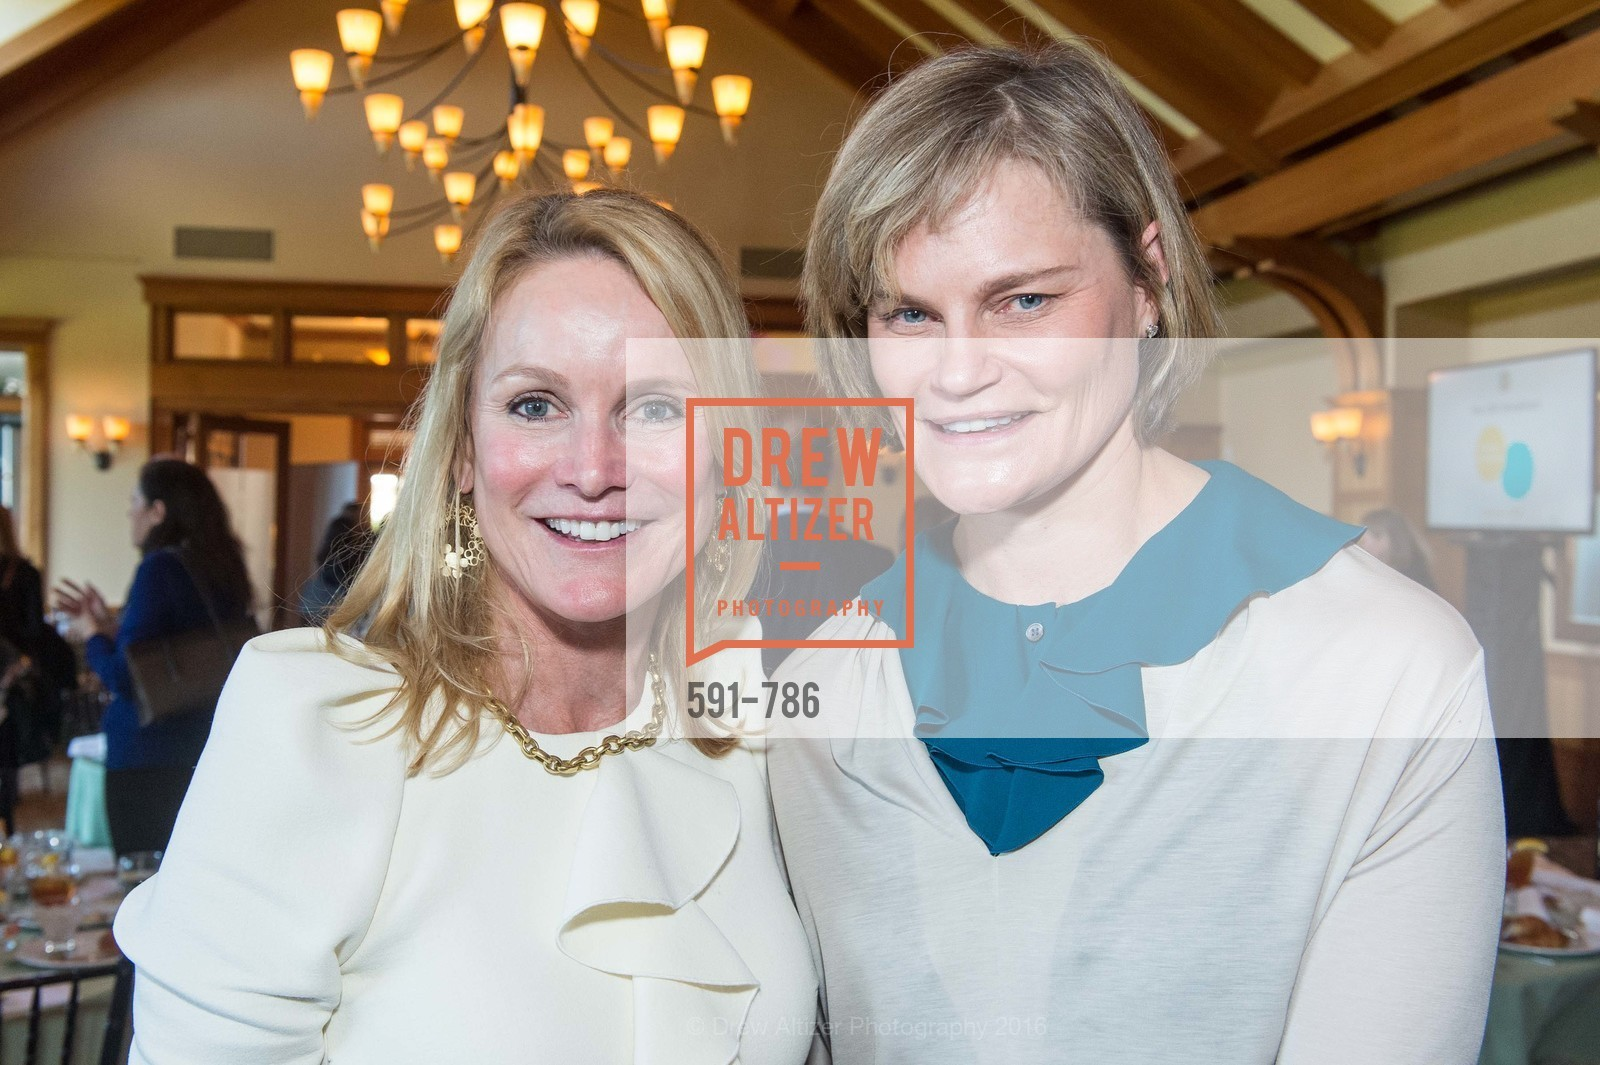 Merrilee Harris, Karen Fisher, The Children's Health Council Breakfast, Sharon Height Golf and Country Club. 900 Sand Hill Rd, February 2nd, 2016,Drew Altizer, Drew Altizer Photography, full-service agency, private events, San Francisco photographer, photographer california